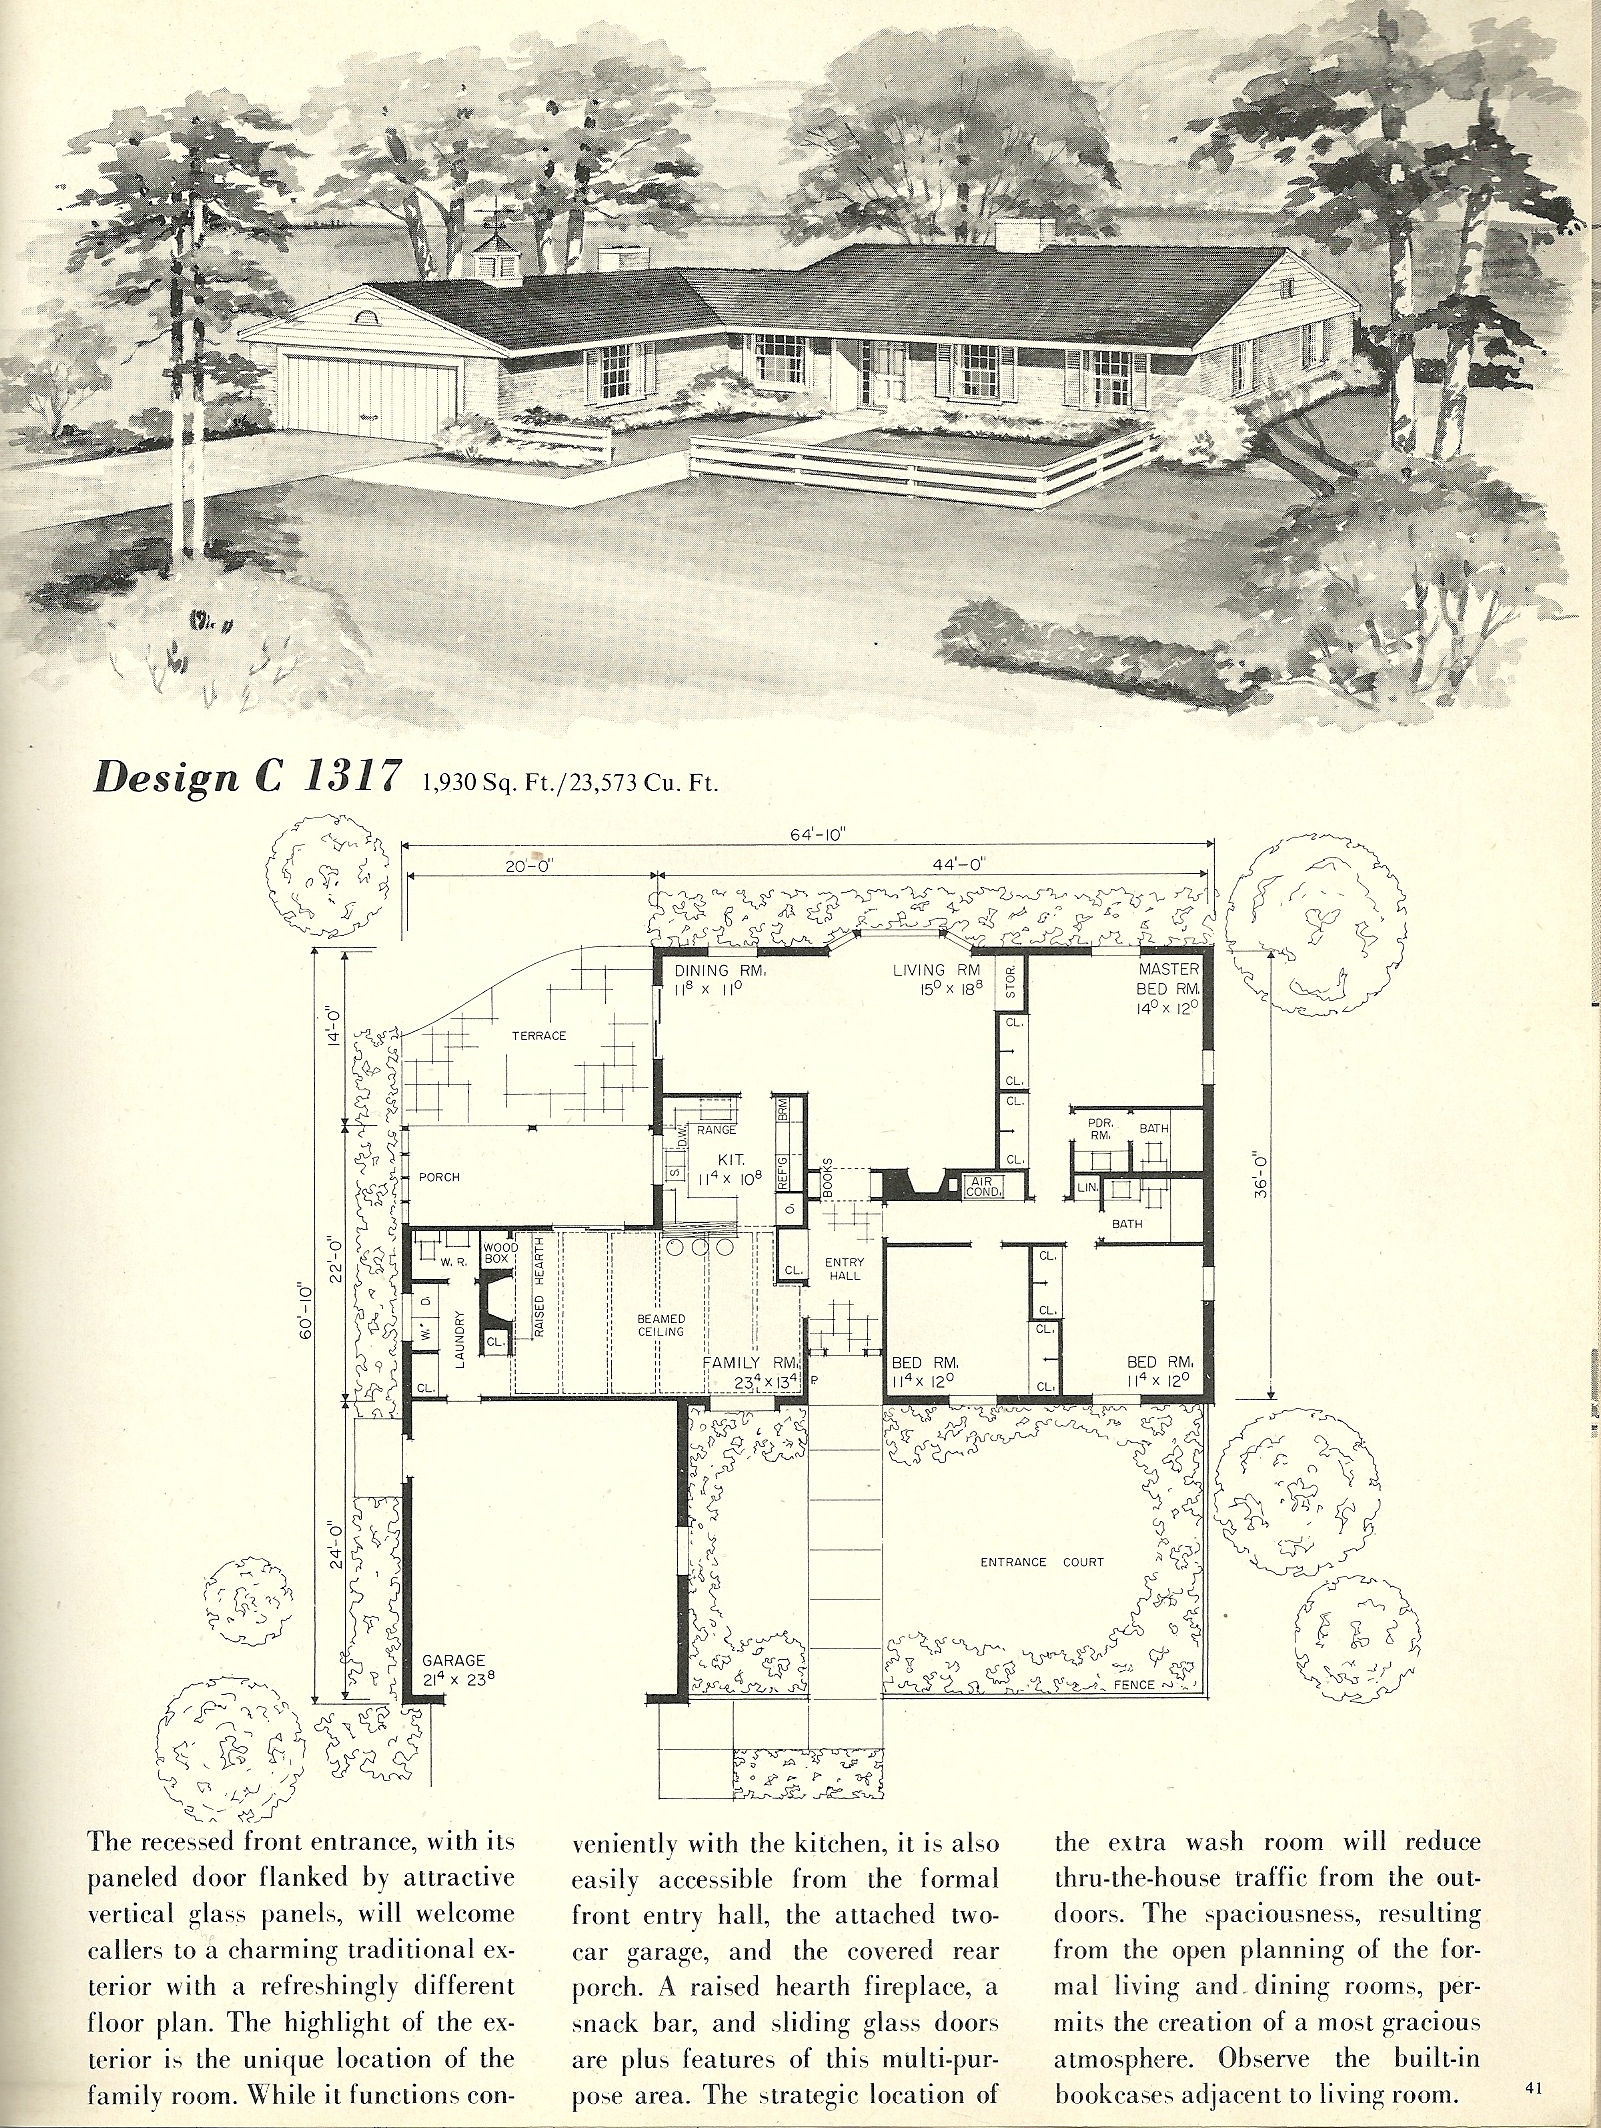 Vintage house plans 1317 antique alter ego for 1960 s home plans